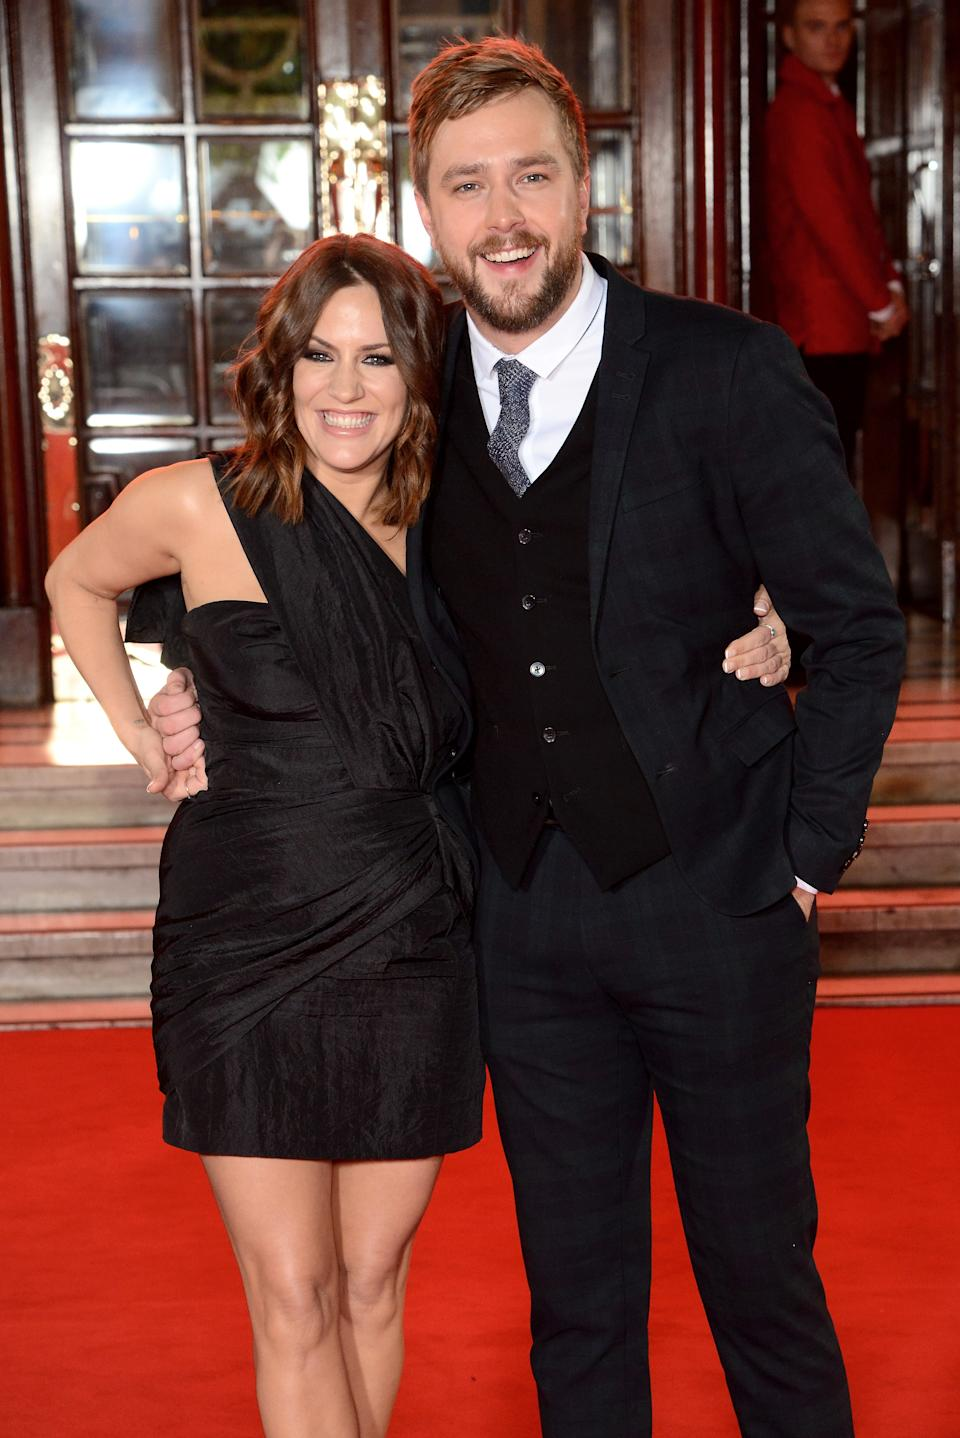 Caroline Flack (L) and Iain Stirling attend the ITV Gala held at the London Palladium on November 9, 2017 in London, England.  (Photo by Dave J Hogan/Dave J Hogan/Getty Images)